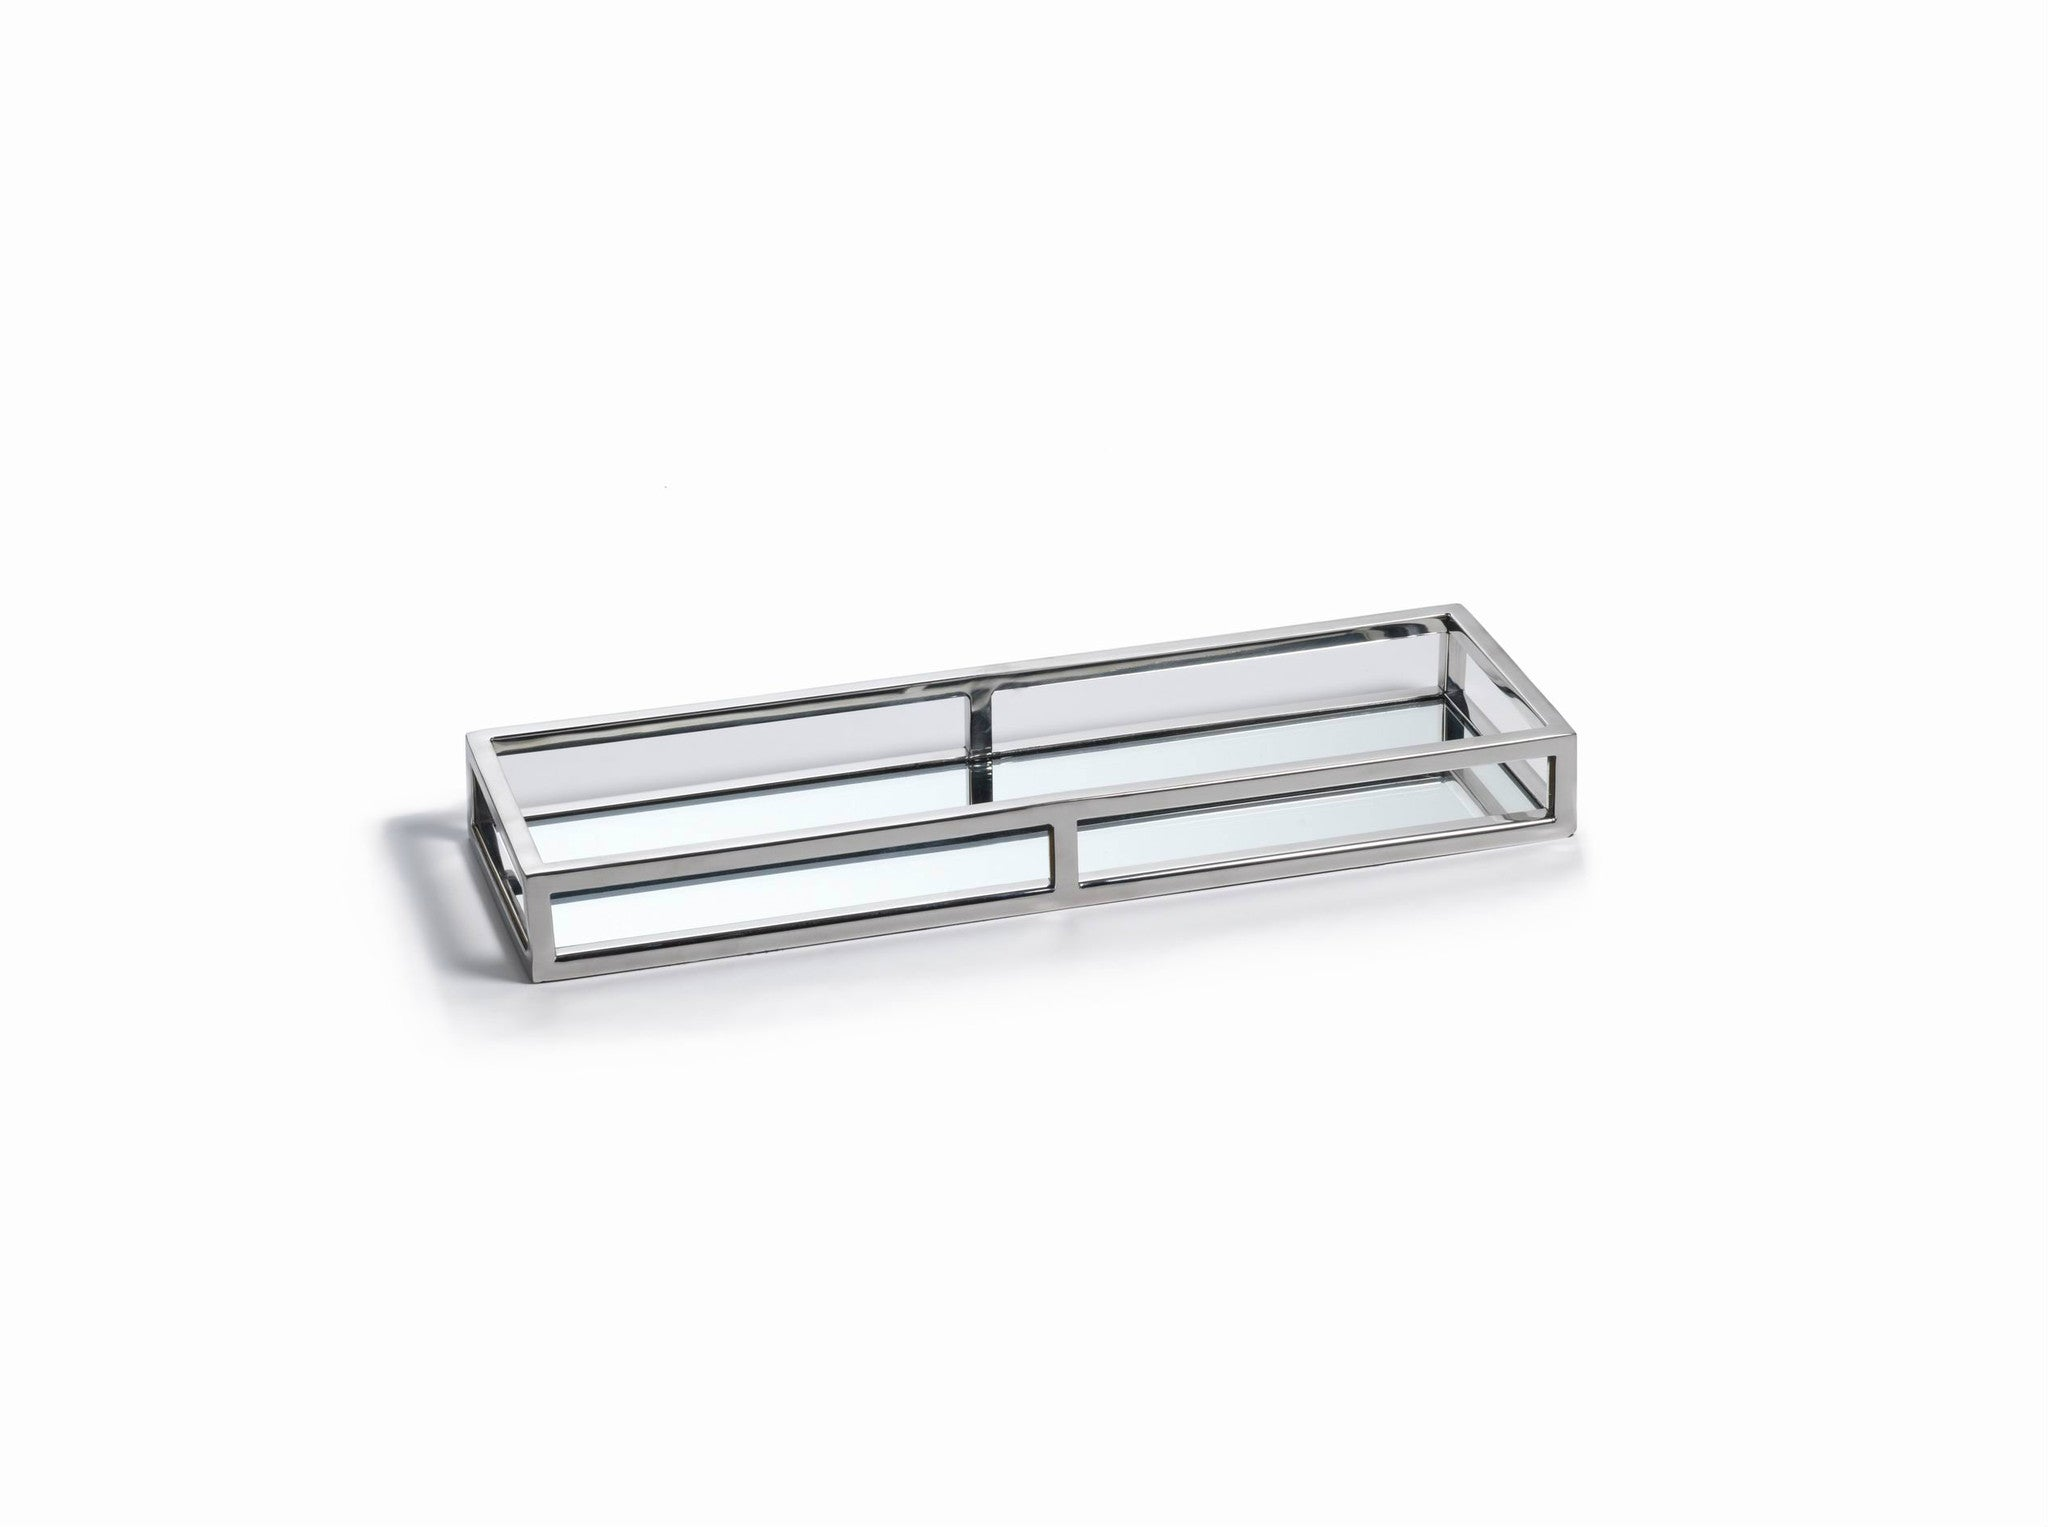 Rectangular Narrow Mirrored Tray - CARLYLE AVENUE